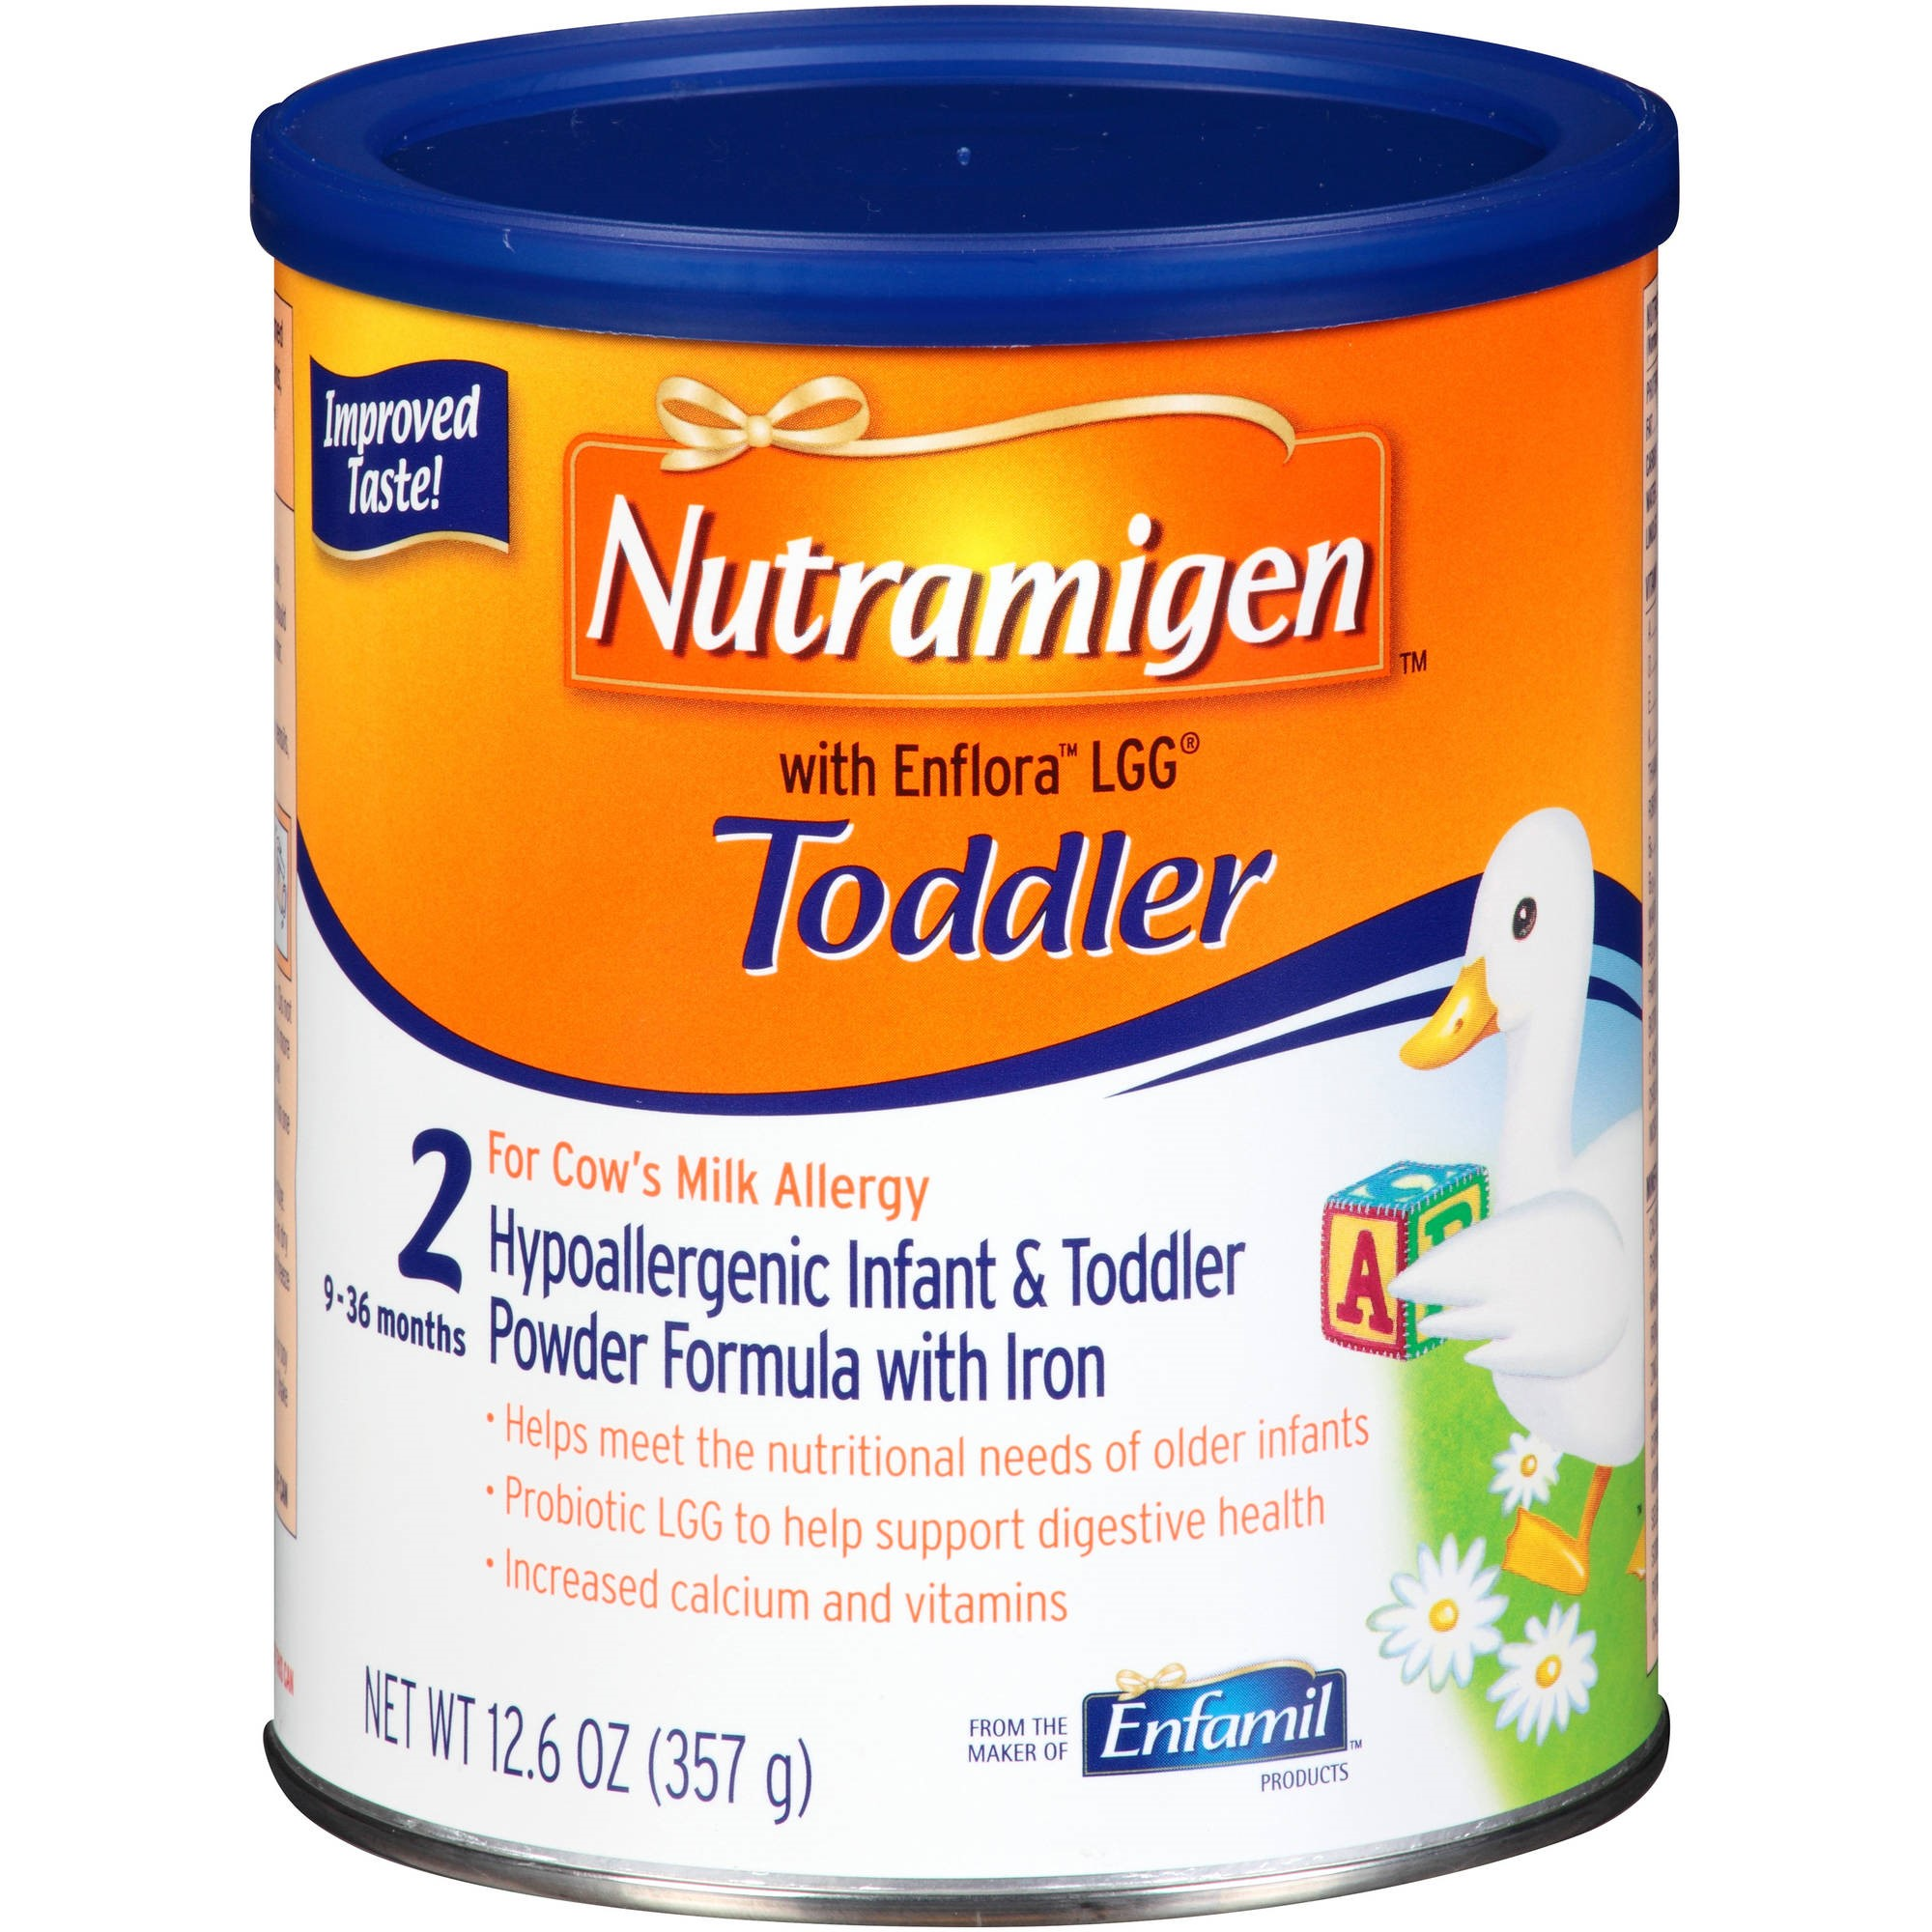 Nutramigen with Enflora LGG Hypoallergenic Infant & Toddler Formula Powder 12.6 oz. Canister